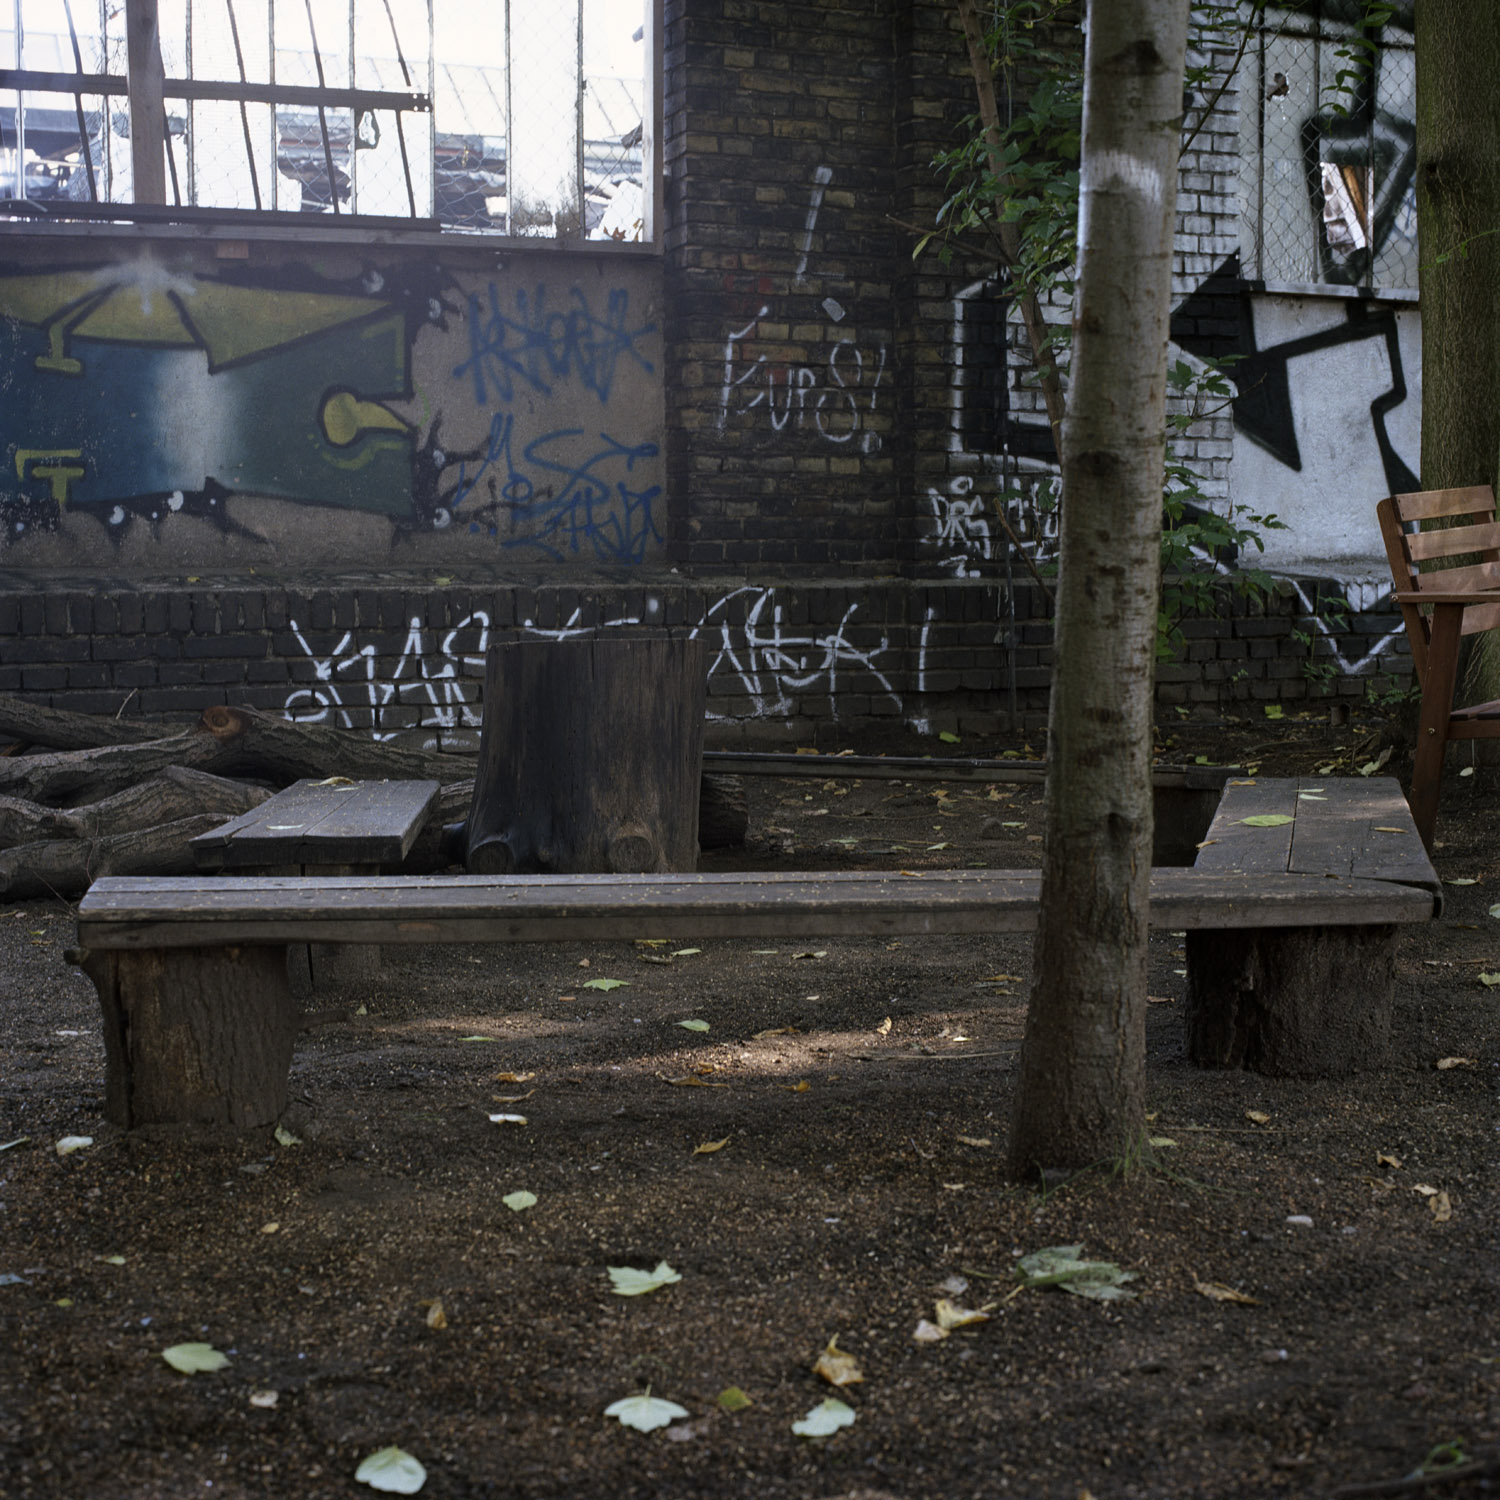 Berlin Interior, 2008, from Berlin Project by Abby Storey